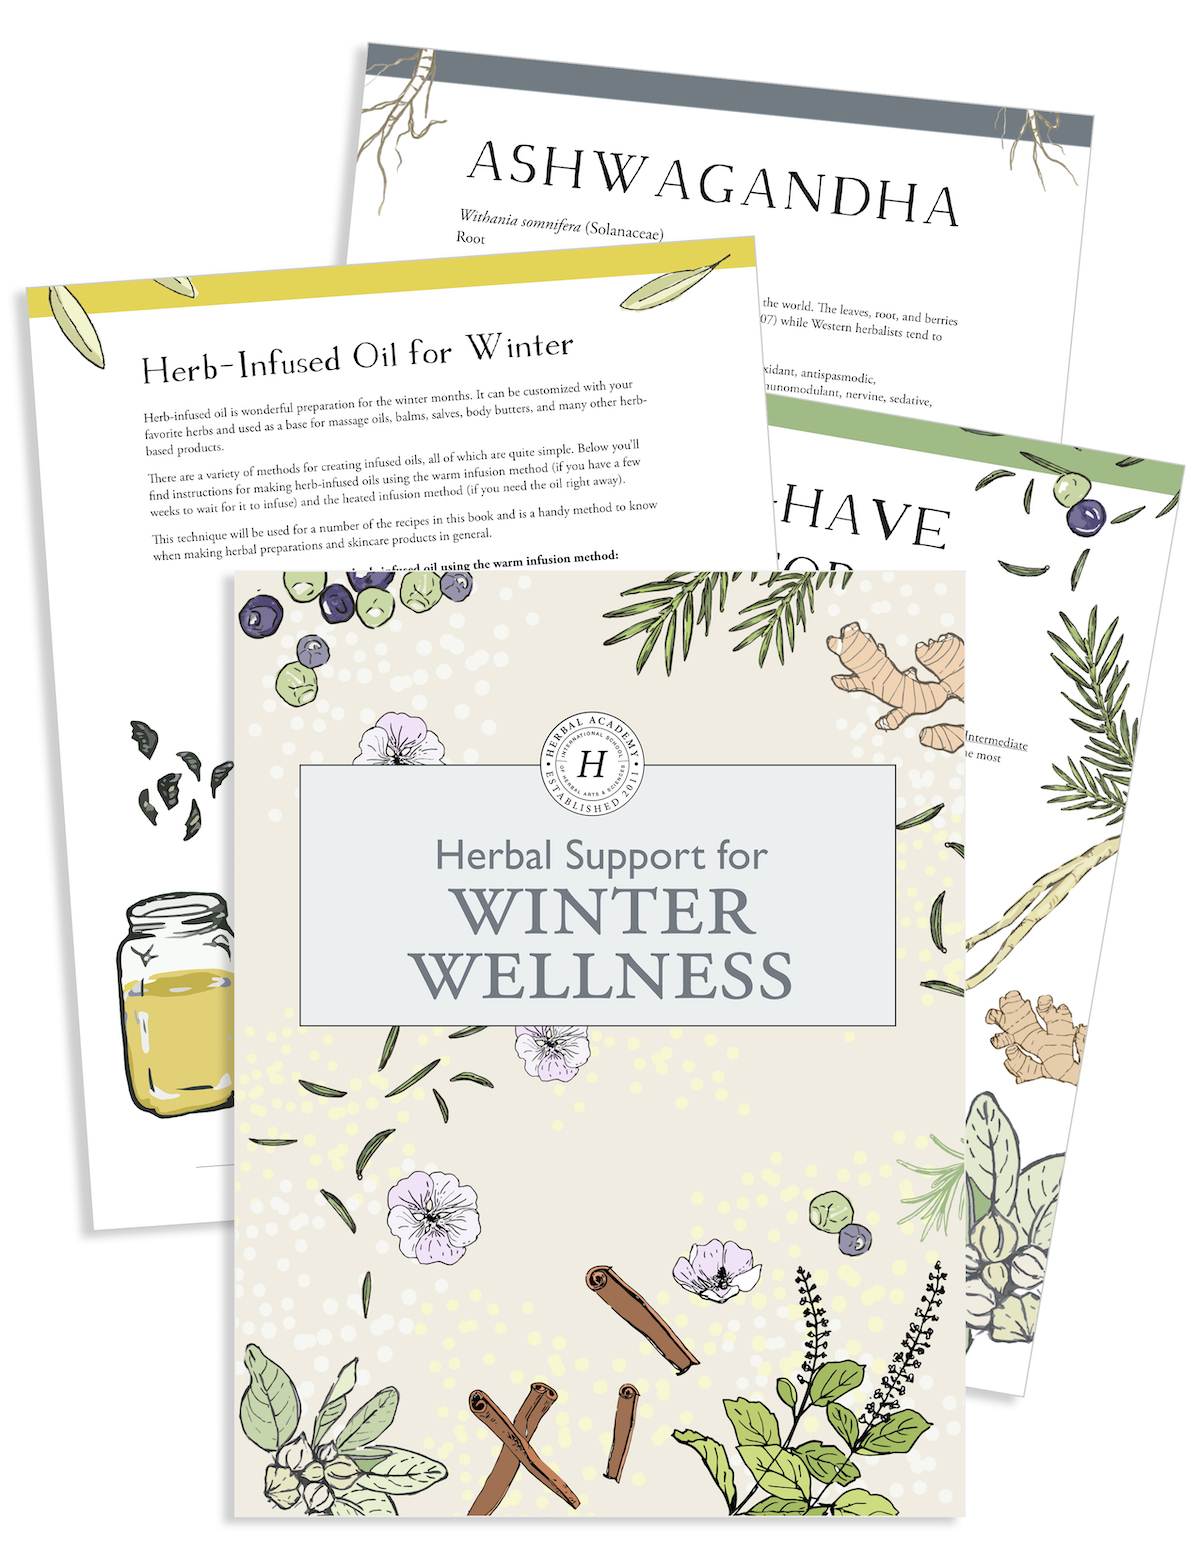 Free Herbal Ebook preview by Herbal Academy -Herbal support for winter wellness ebook